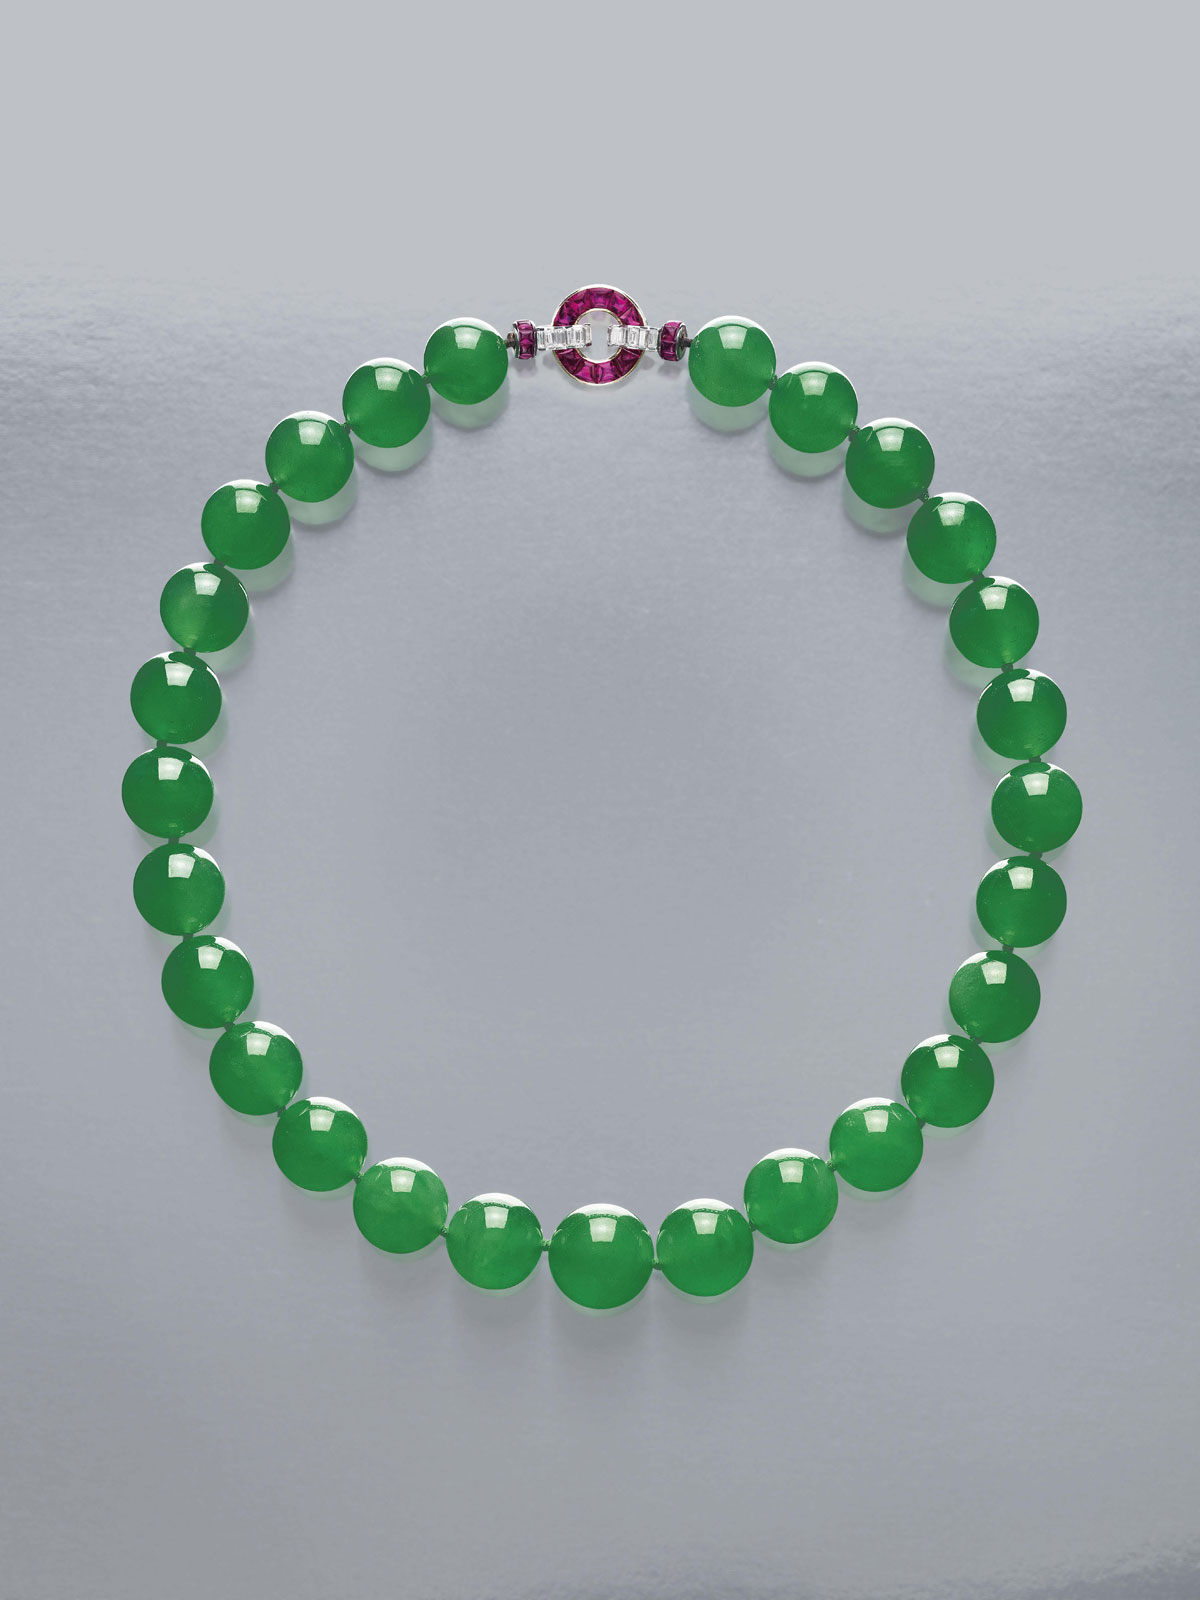 The Hutton Mdivani Necklace Comprised Of 27 Enormous Qing Jadeite Beads With An Art